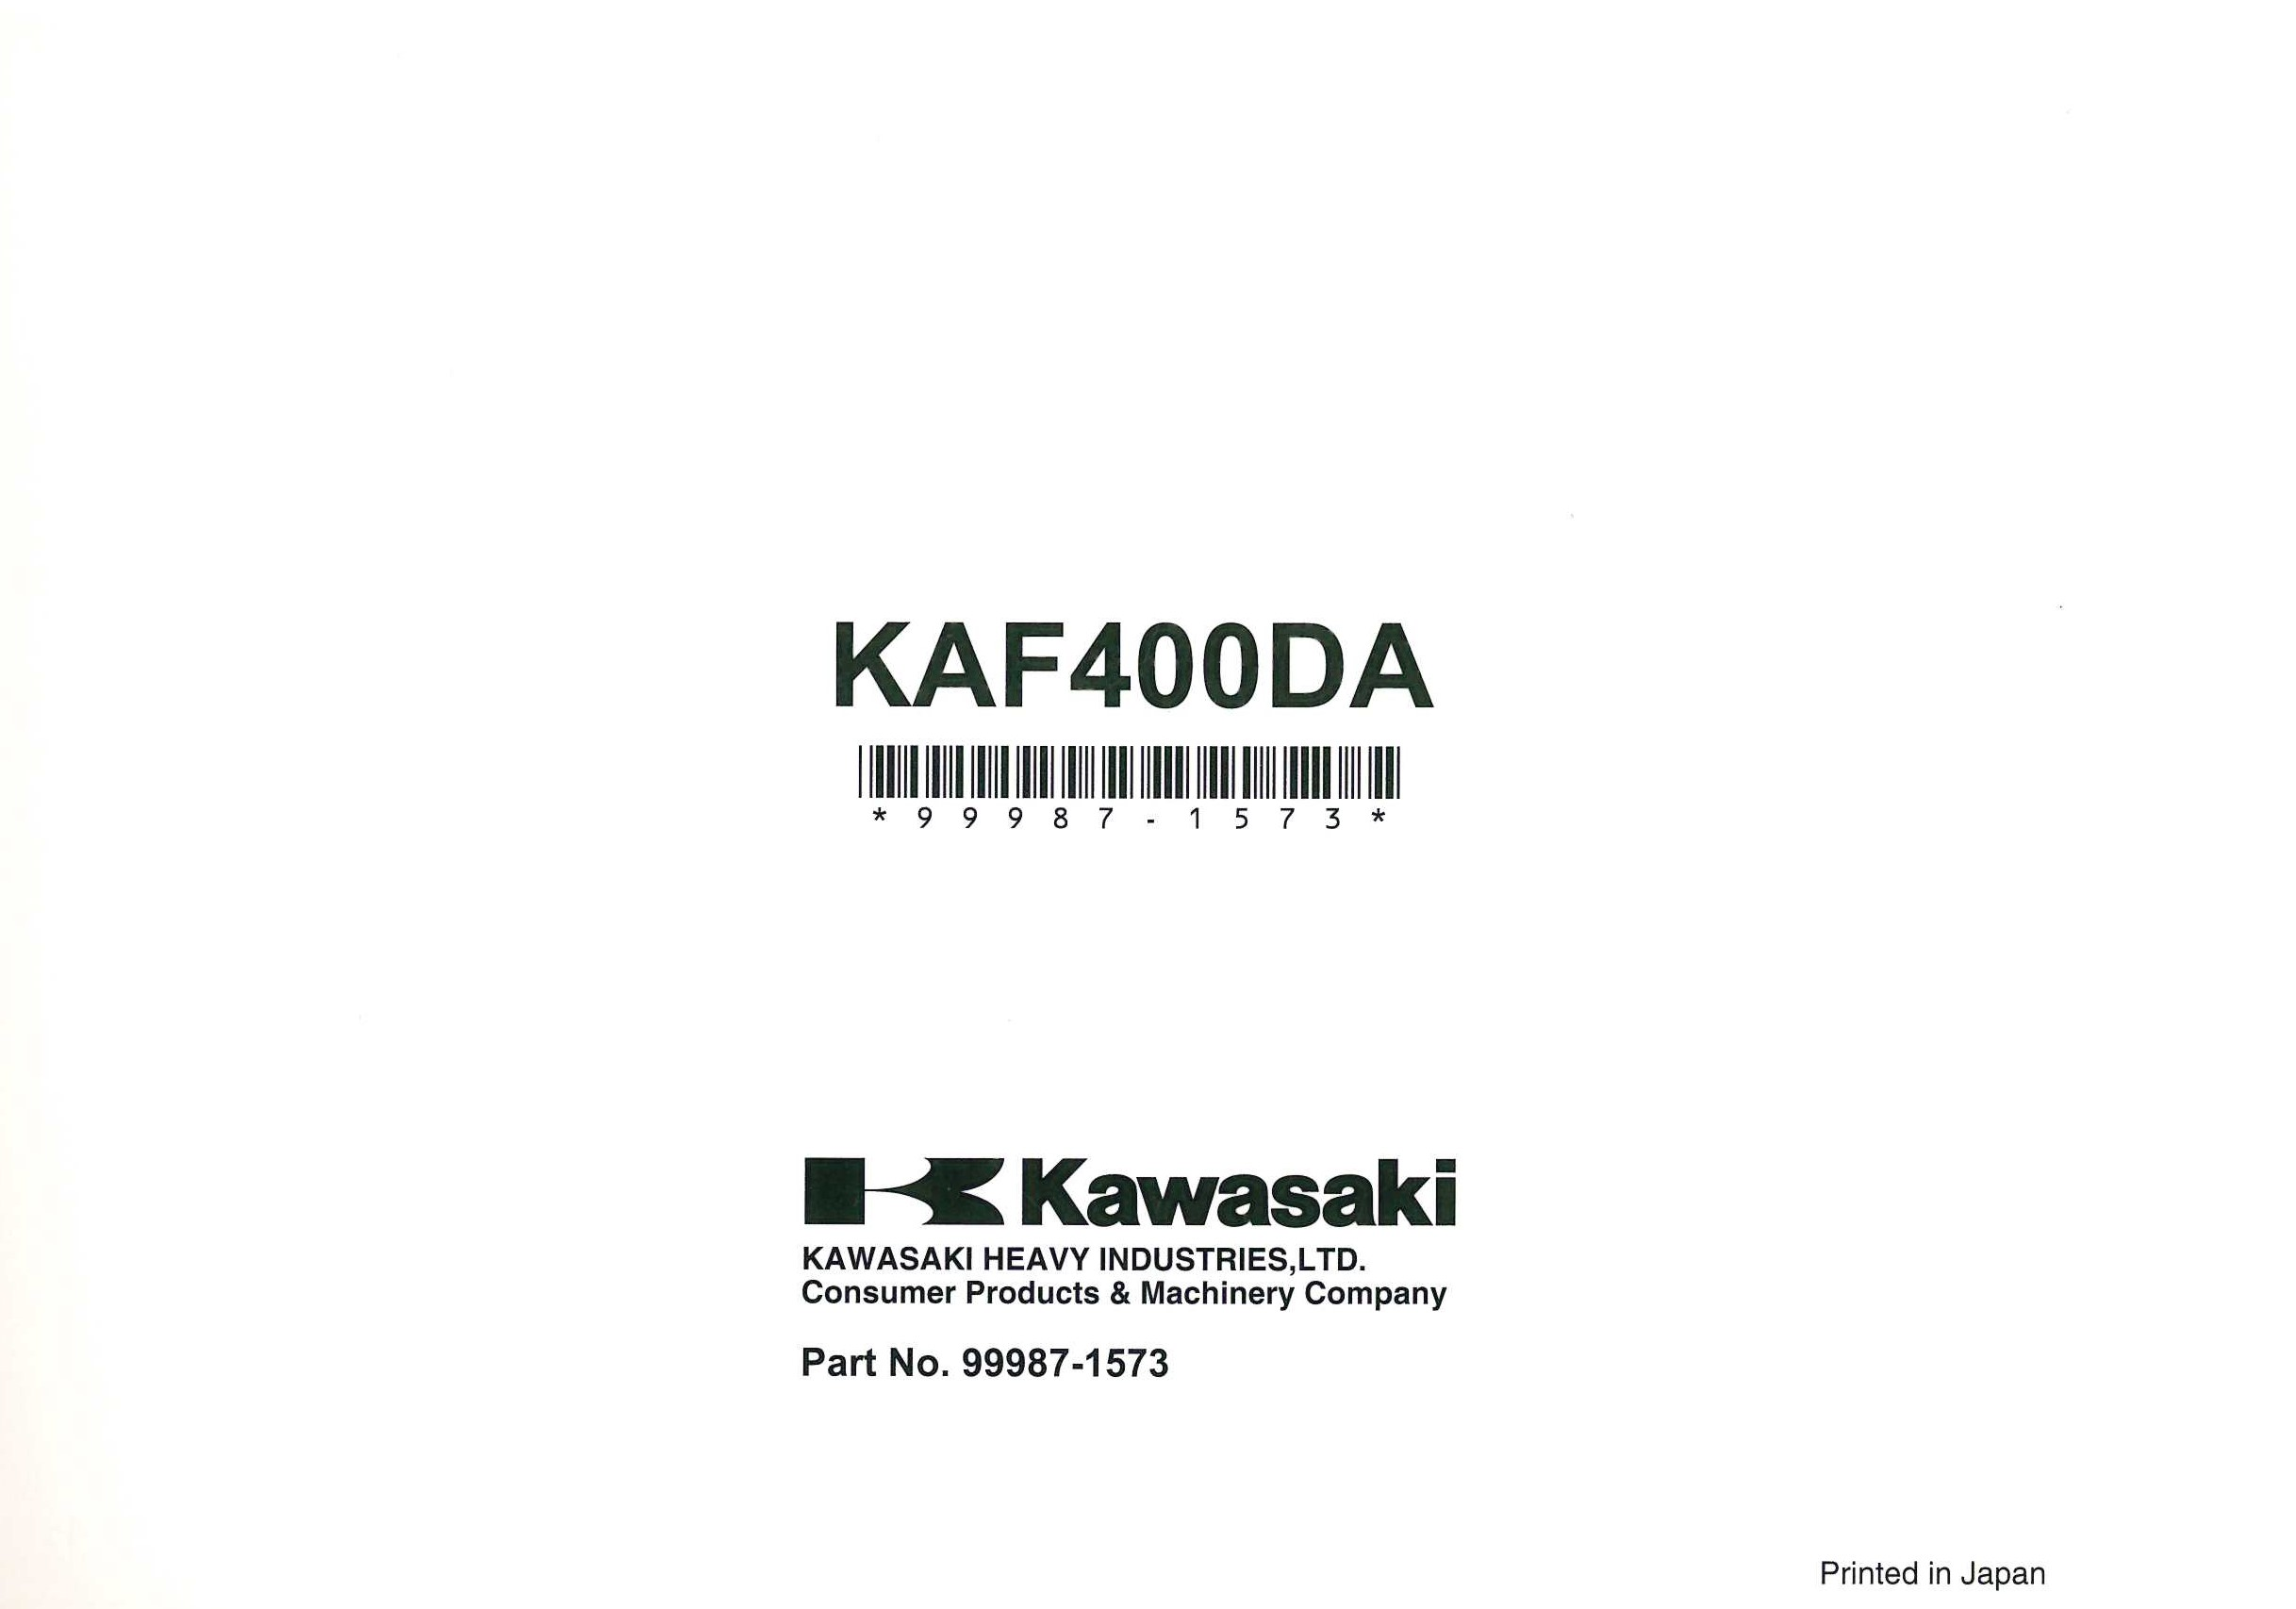 Kawasaki Kaf400d Mule 610 4x4 Xc Owners Manual